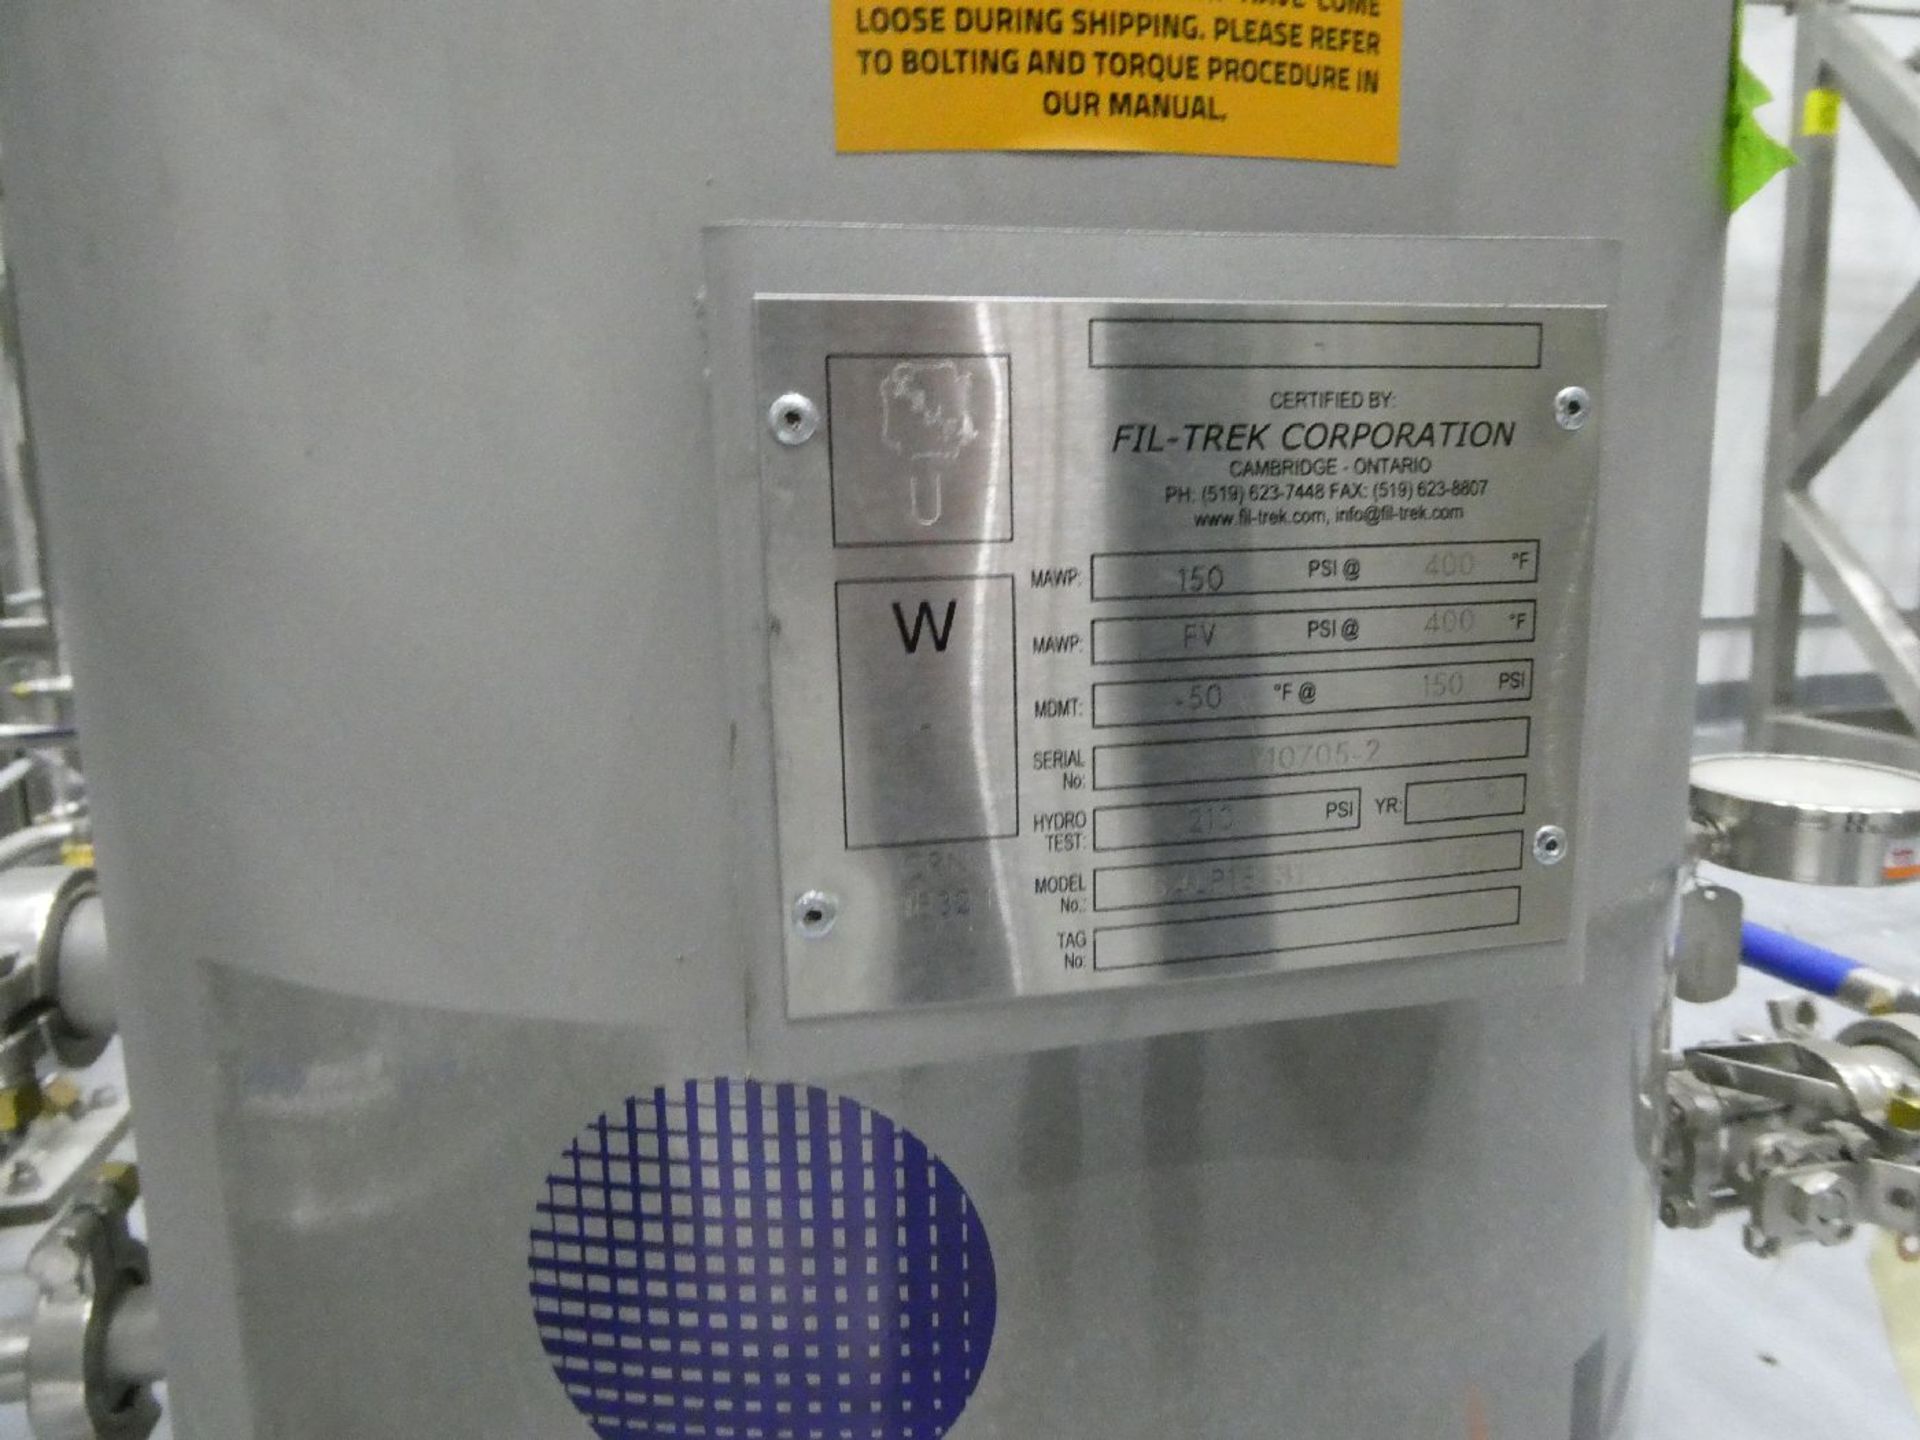 ROTAX Closed Loop Solvent Based Continuous Oil Extraction System - Image 17 of 68